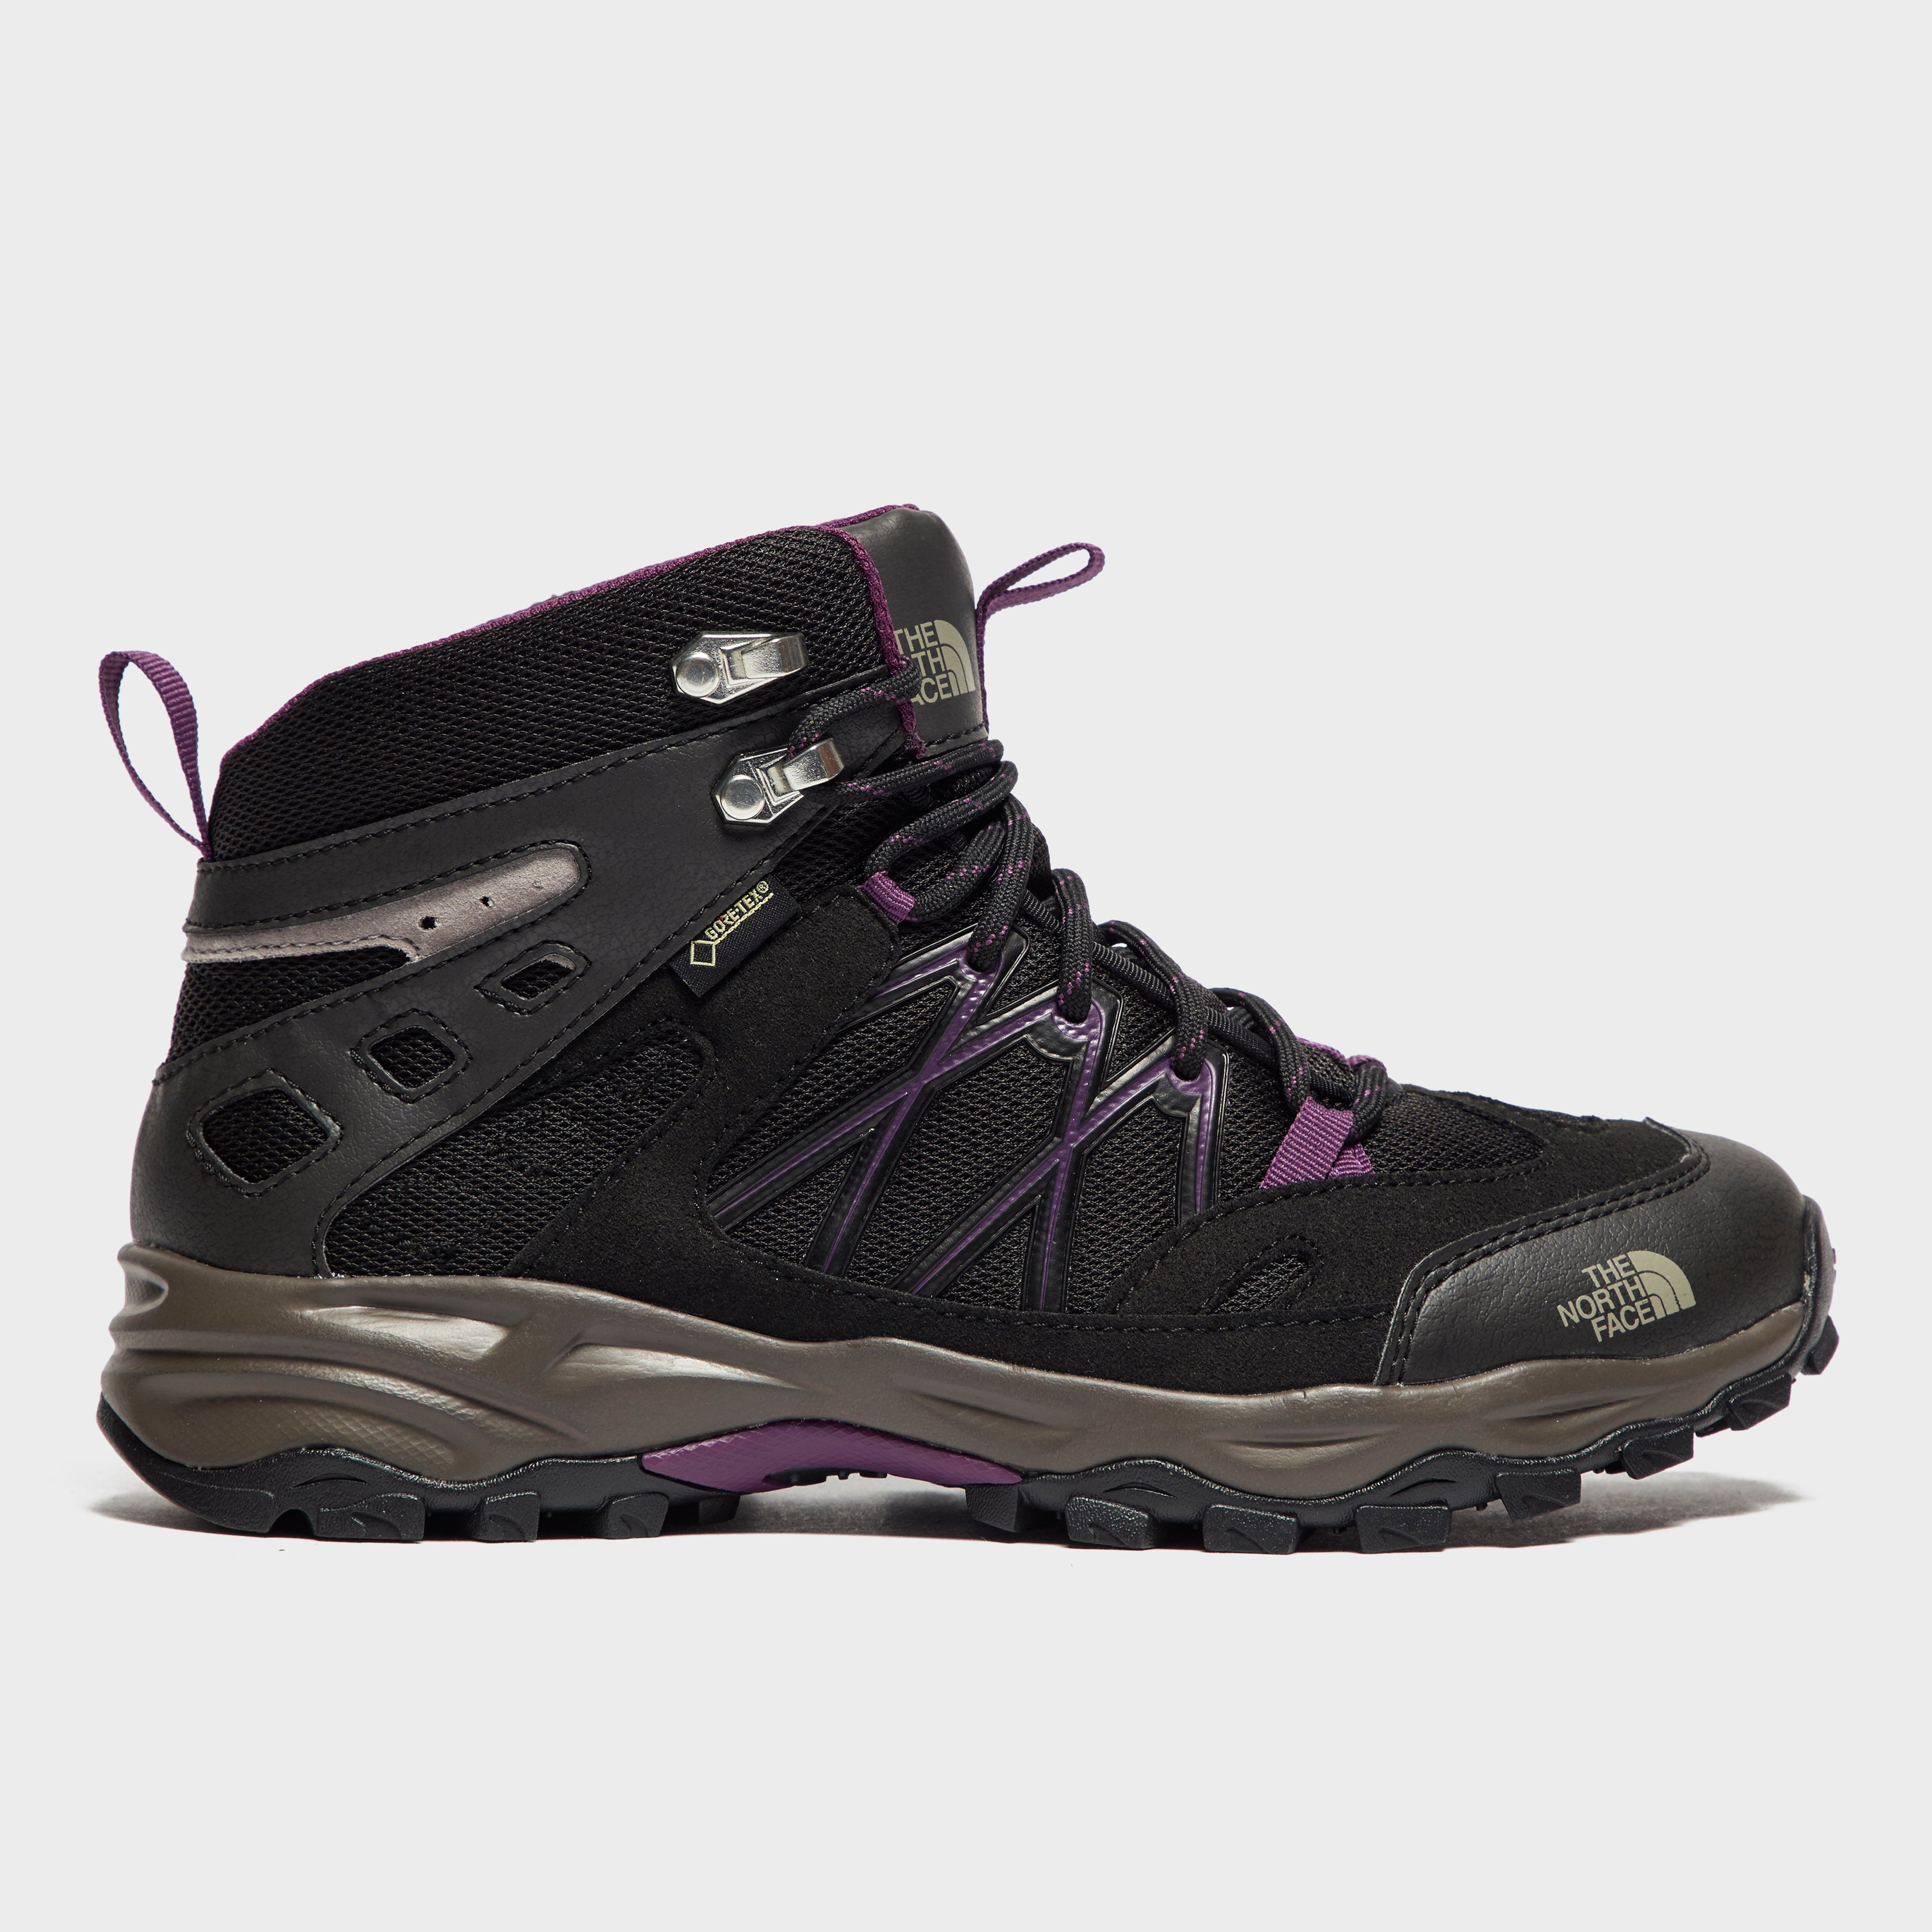 THE NORTH FACE Women's Terra Mid GORE-TEX® Walking Boot